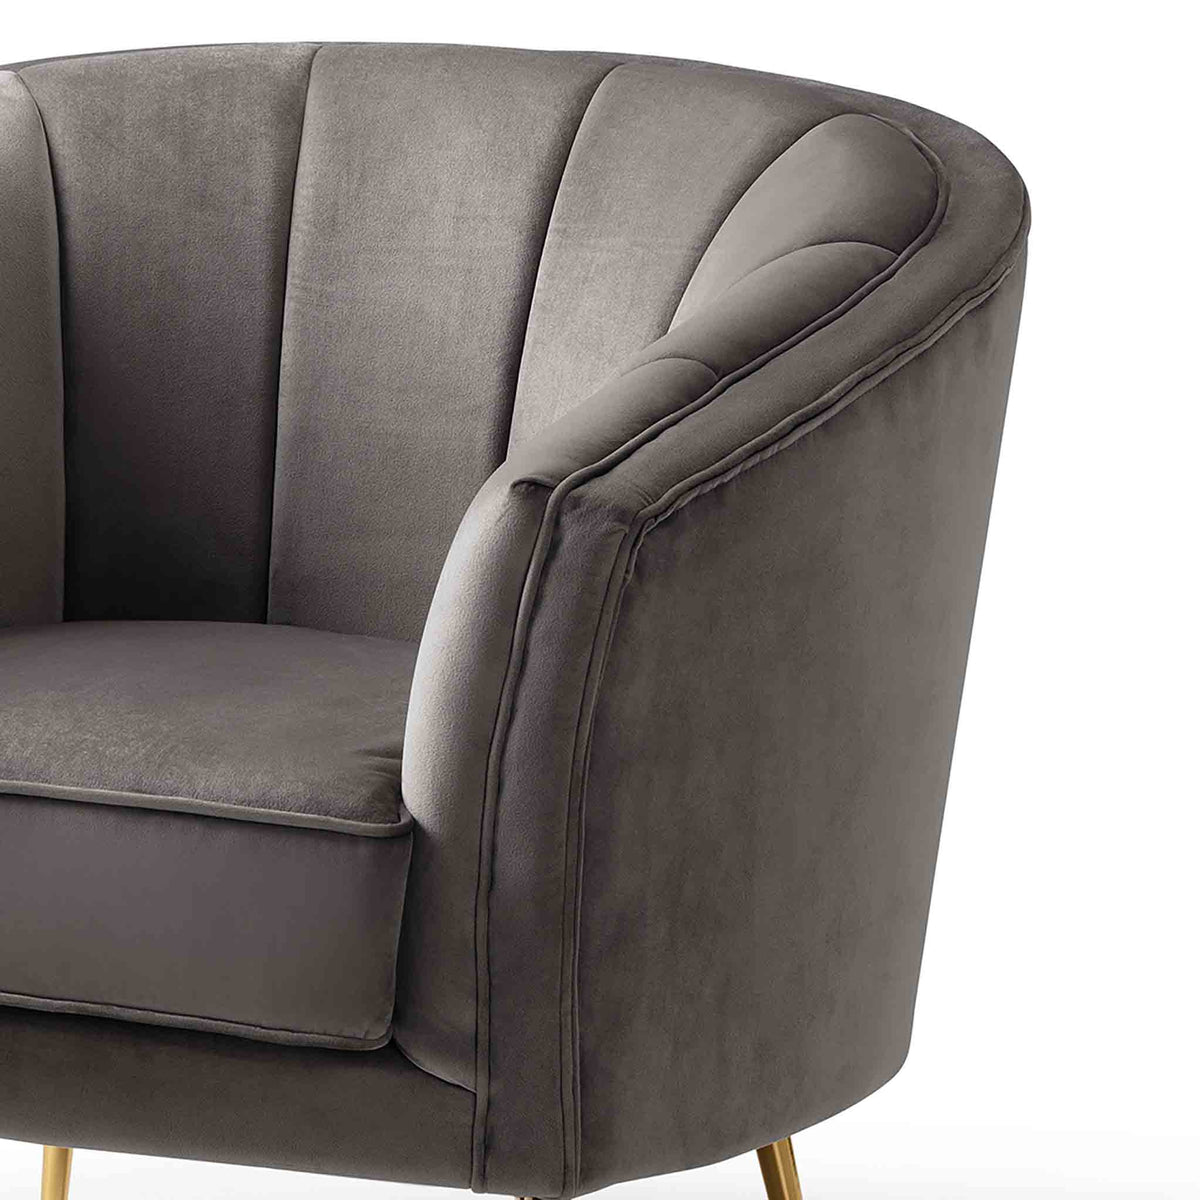 Adele Accent Chair - Fossil Grey